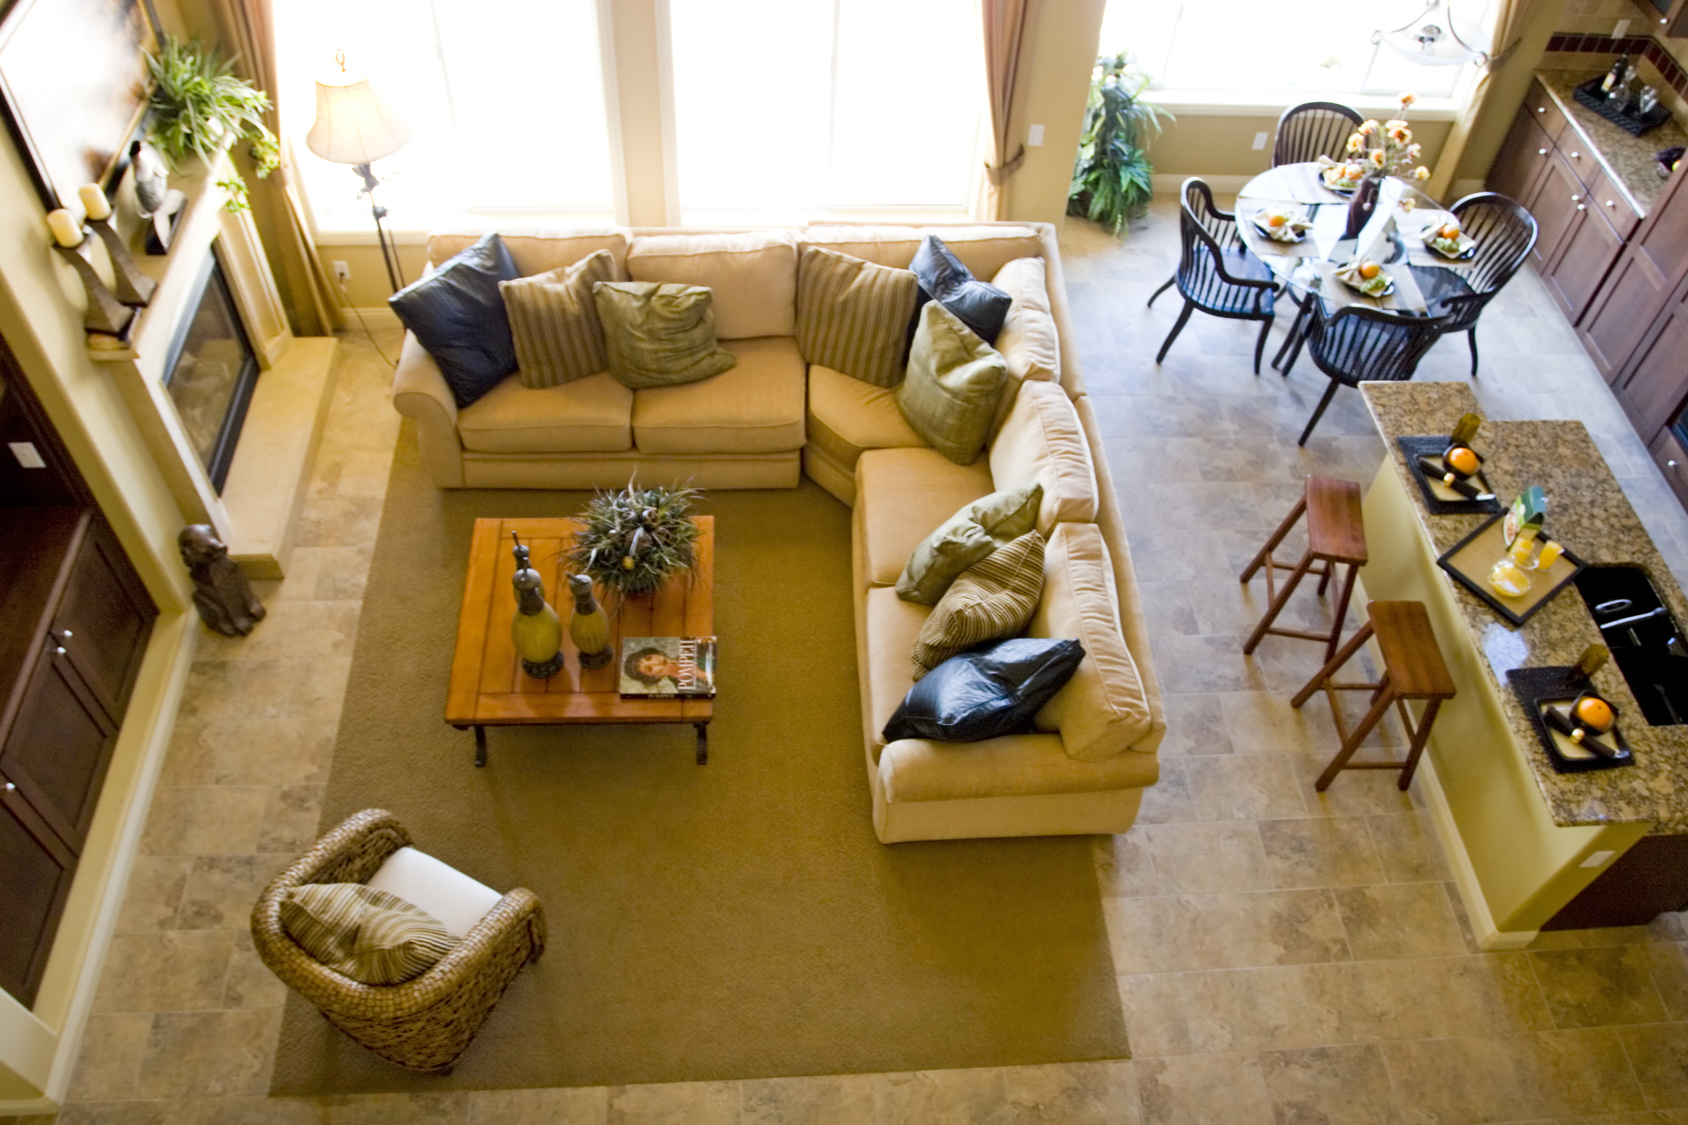 The Abilene, TX area's best area rug store is Menke Inc